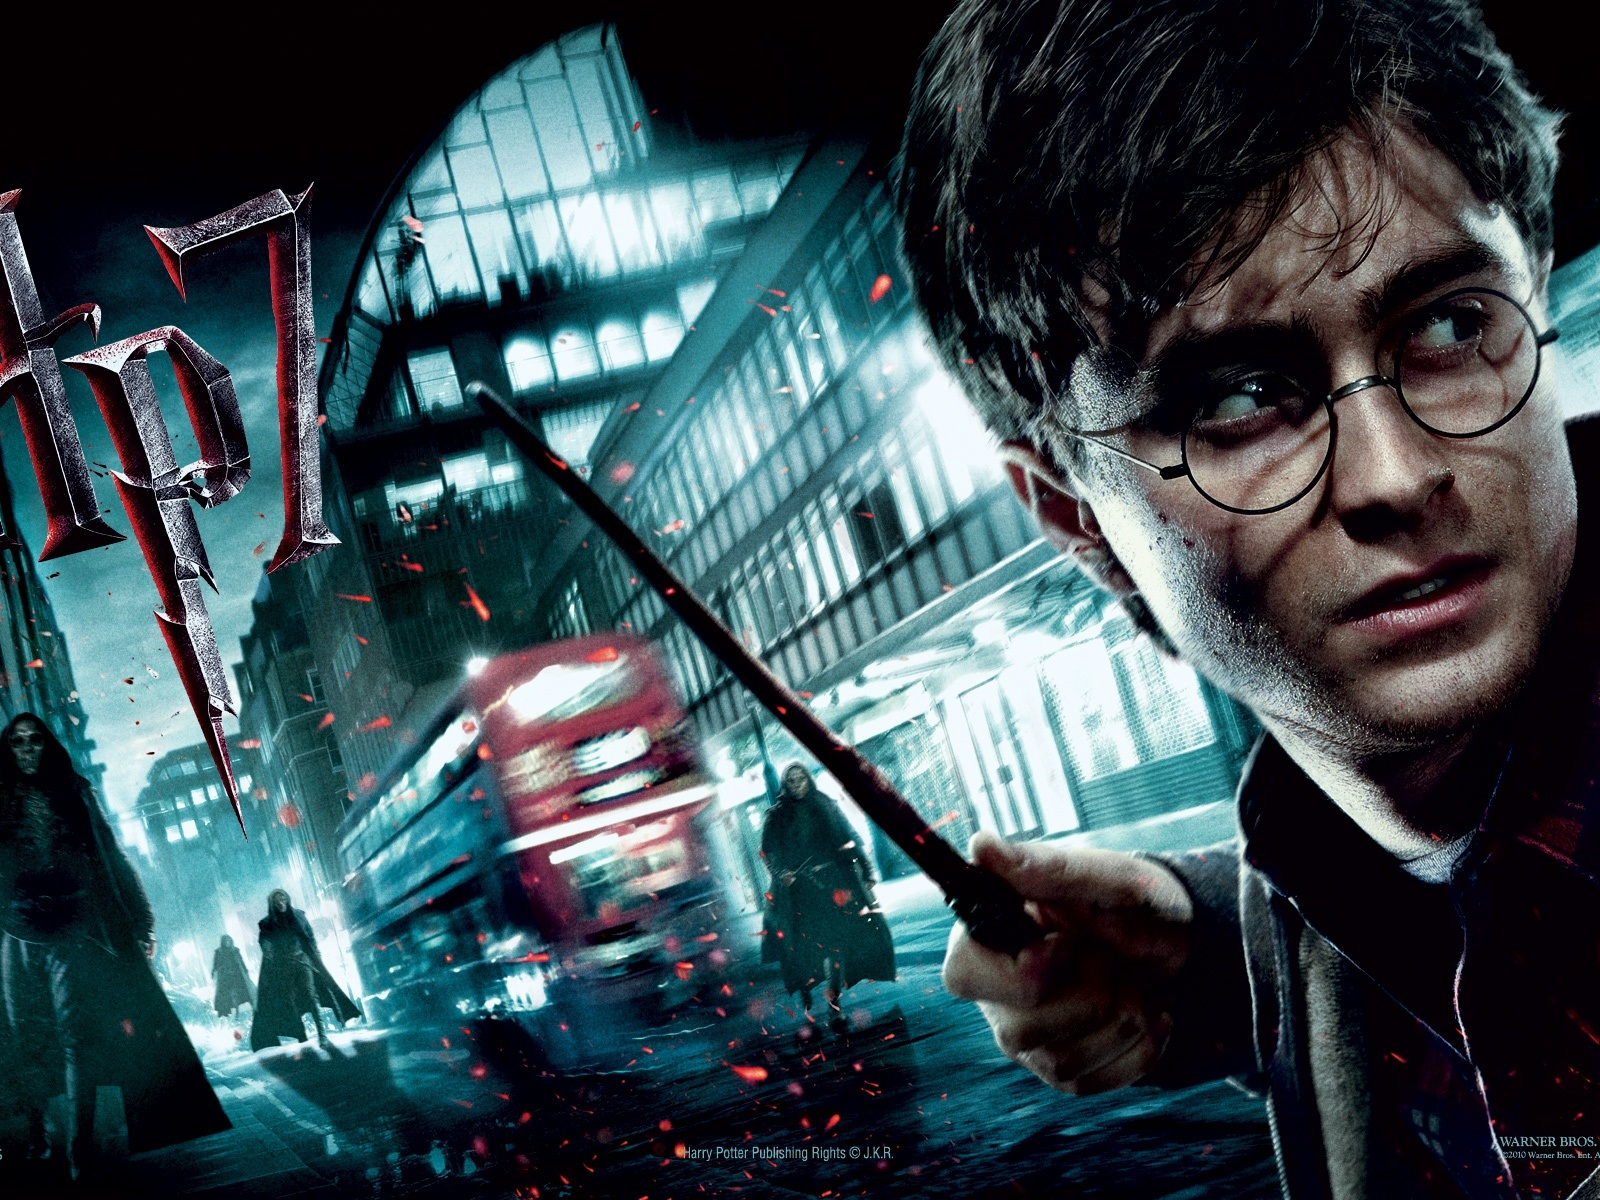 Harry Potter And The Deathly Hallows Part 8 - HD Wallpaper